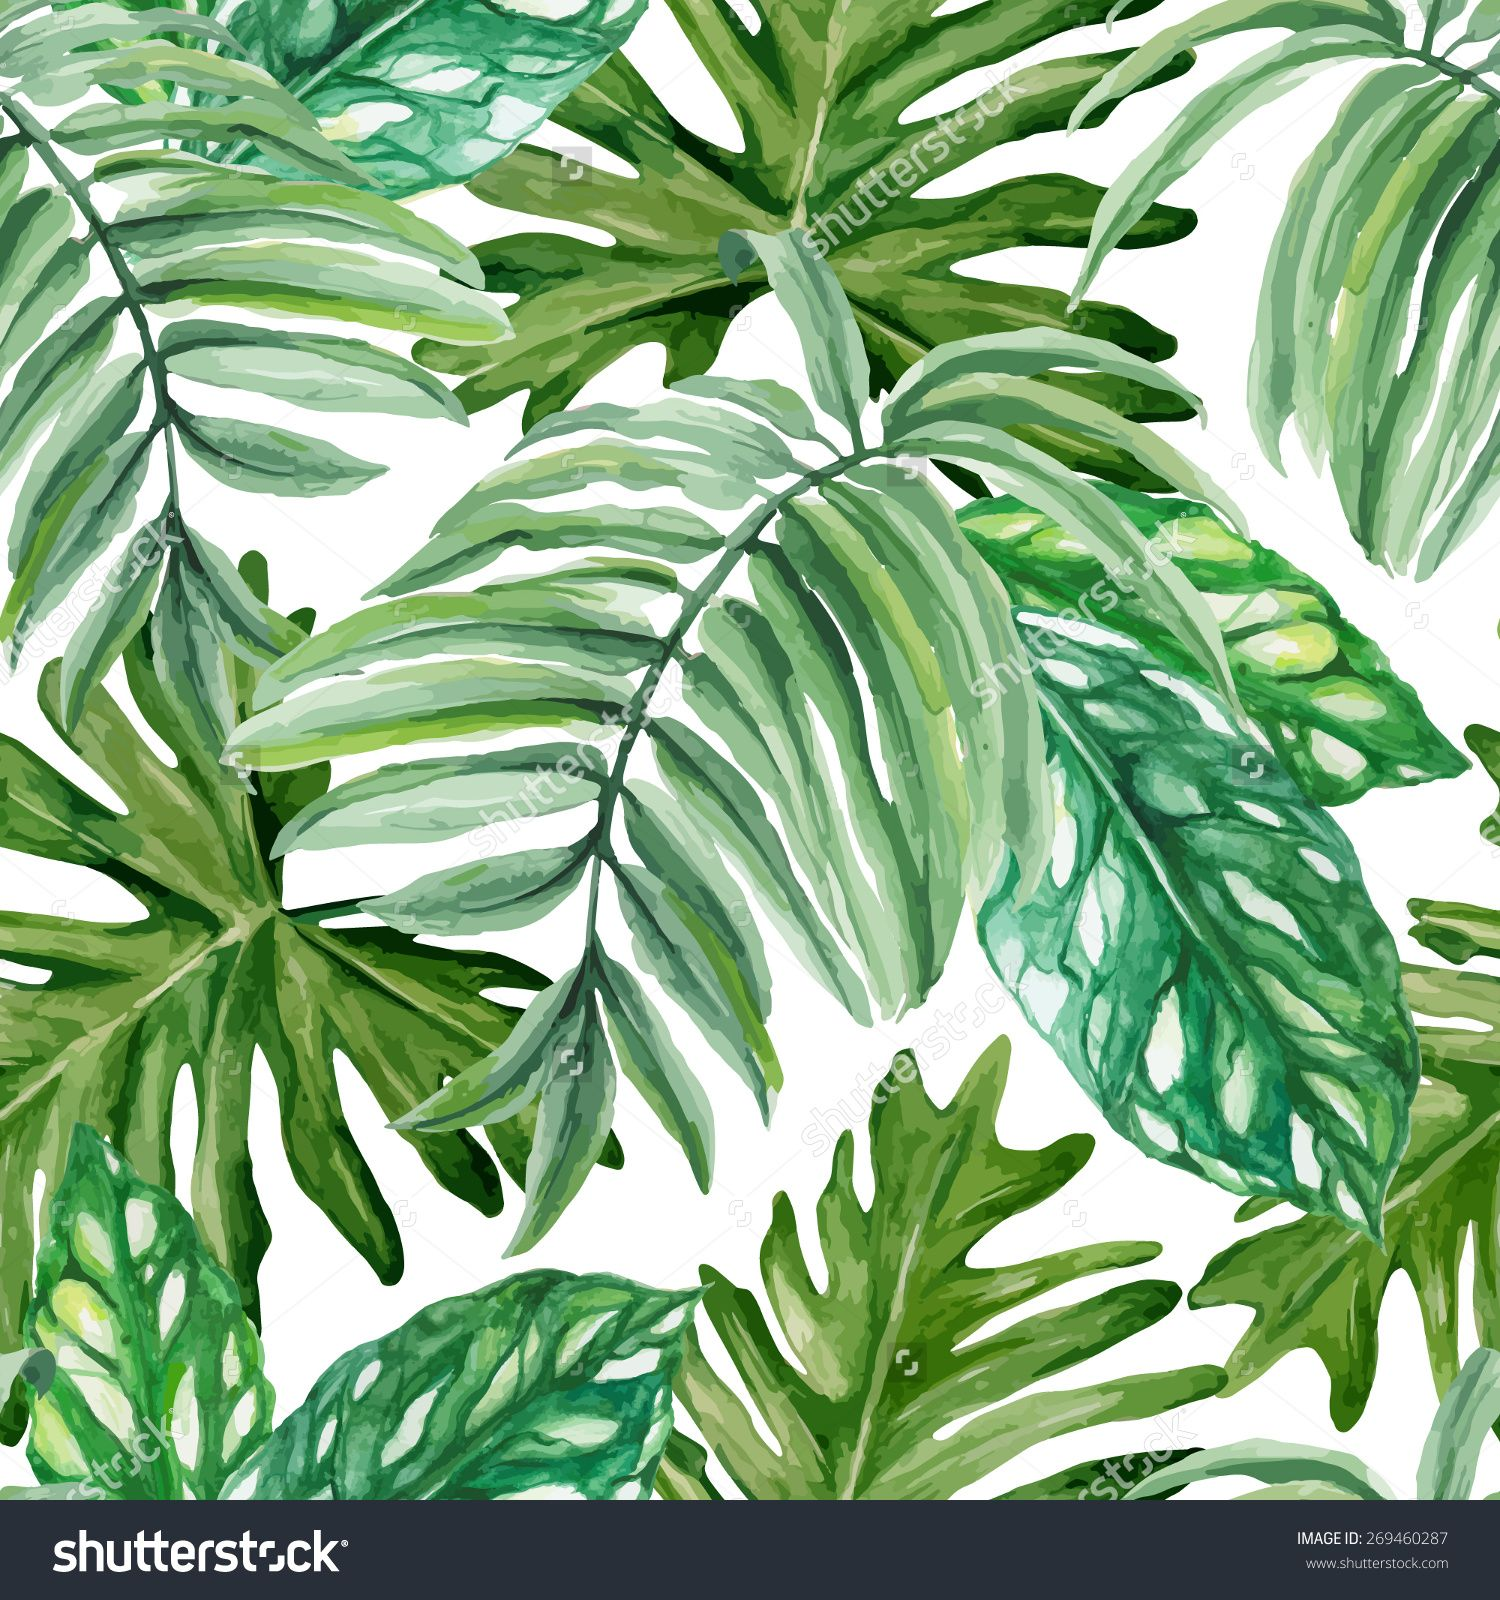 Watercolor Green Plants Monstera Nature Posters And Prints: Exotic Leaves, Rainforest. Seamless, Hand Painted